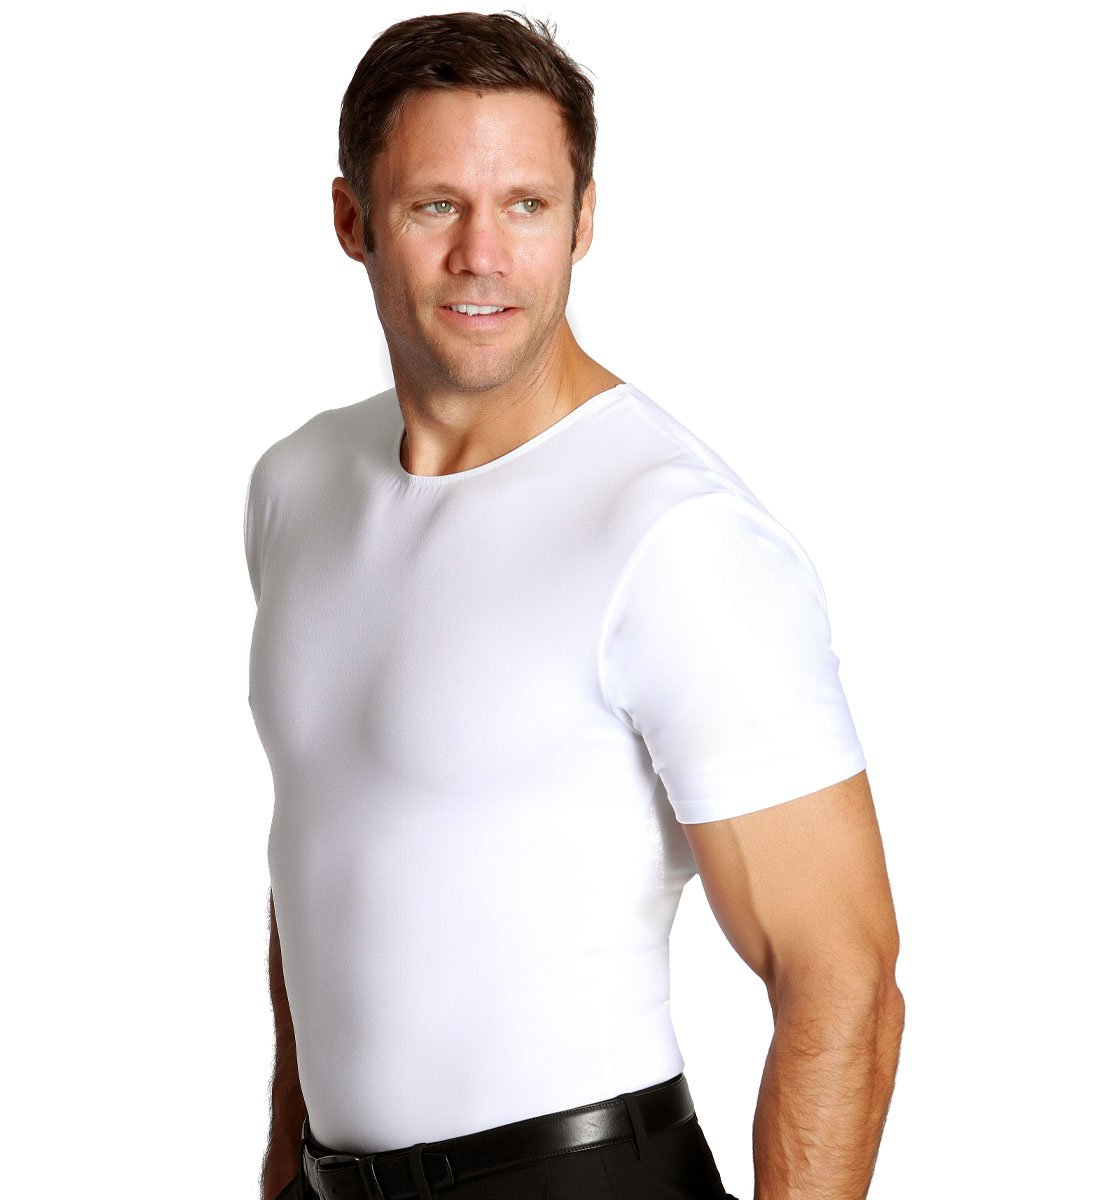 Insta Slim Men's Compression Crew-Neck T-Shirt (Large, White), The Magic Is In The Fabric! by Insta Slim (Image #3)